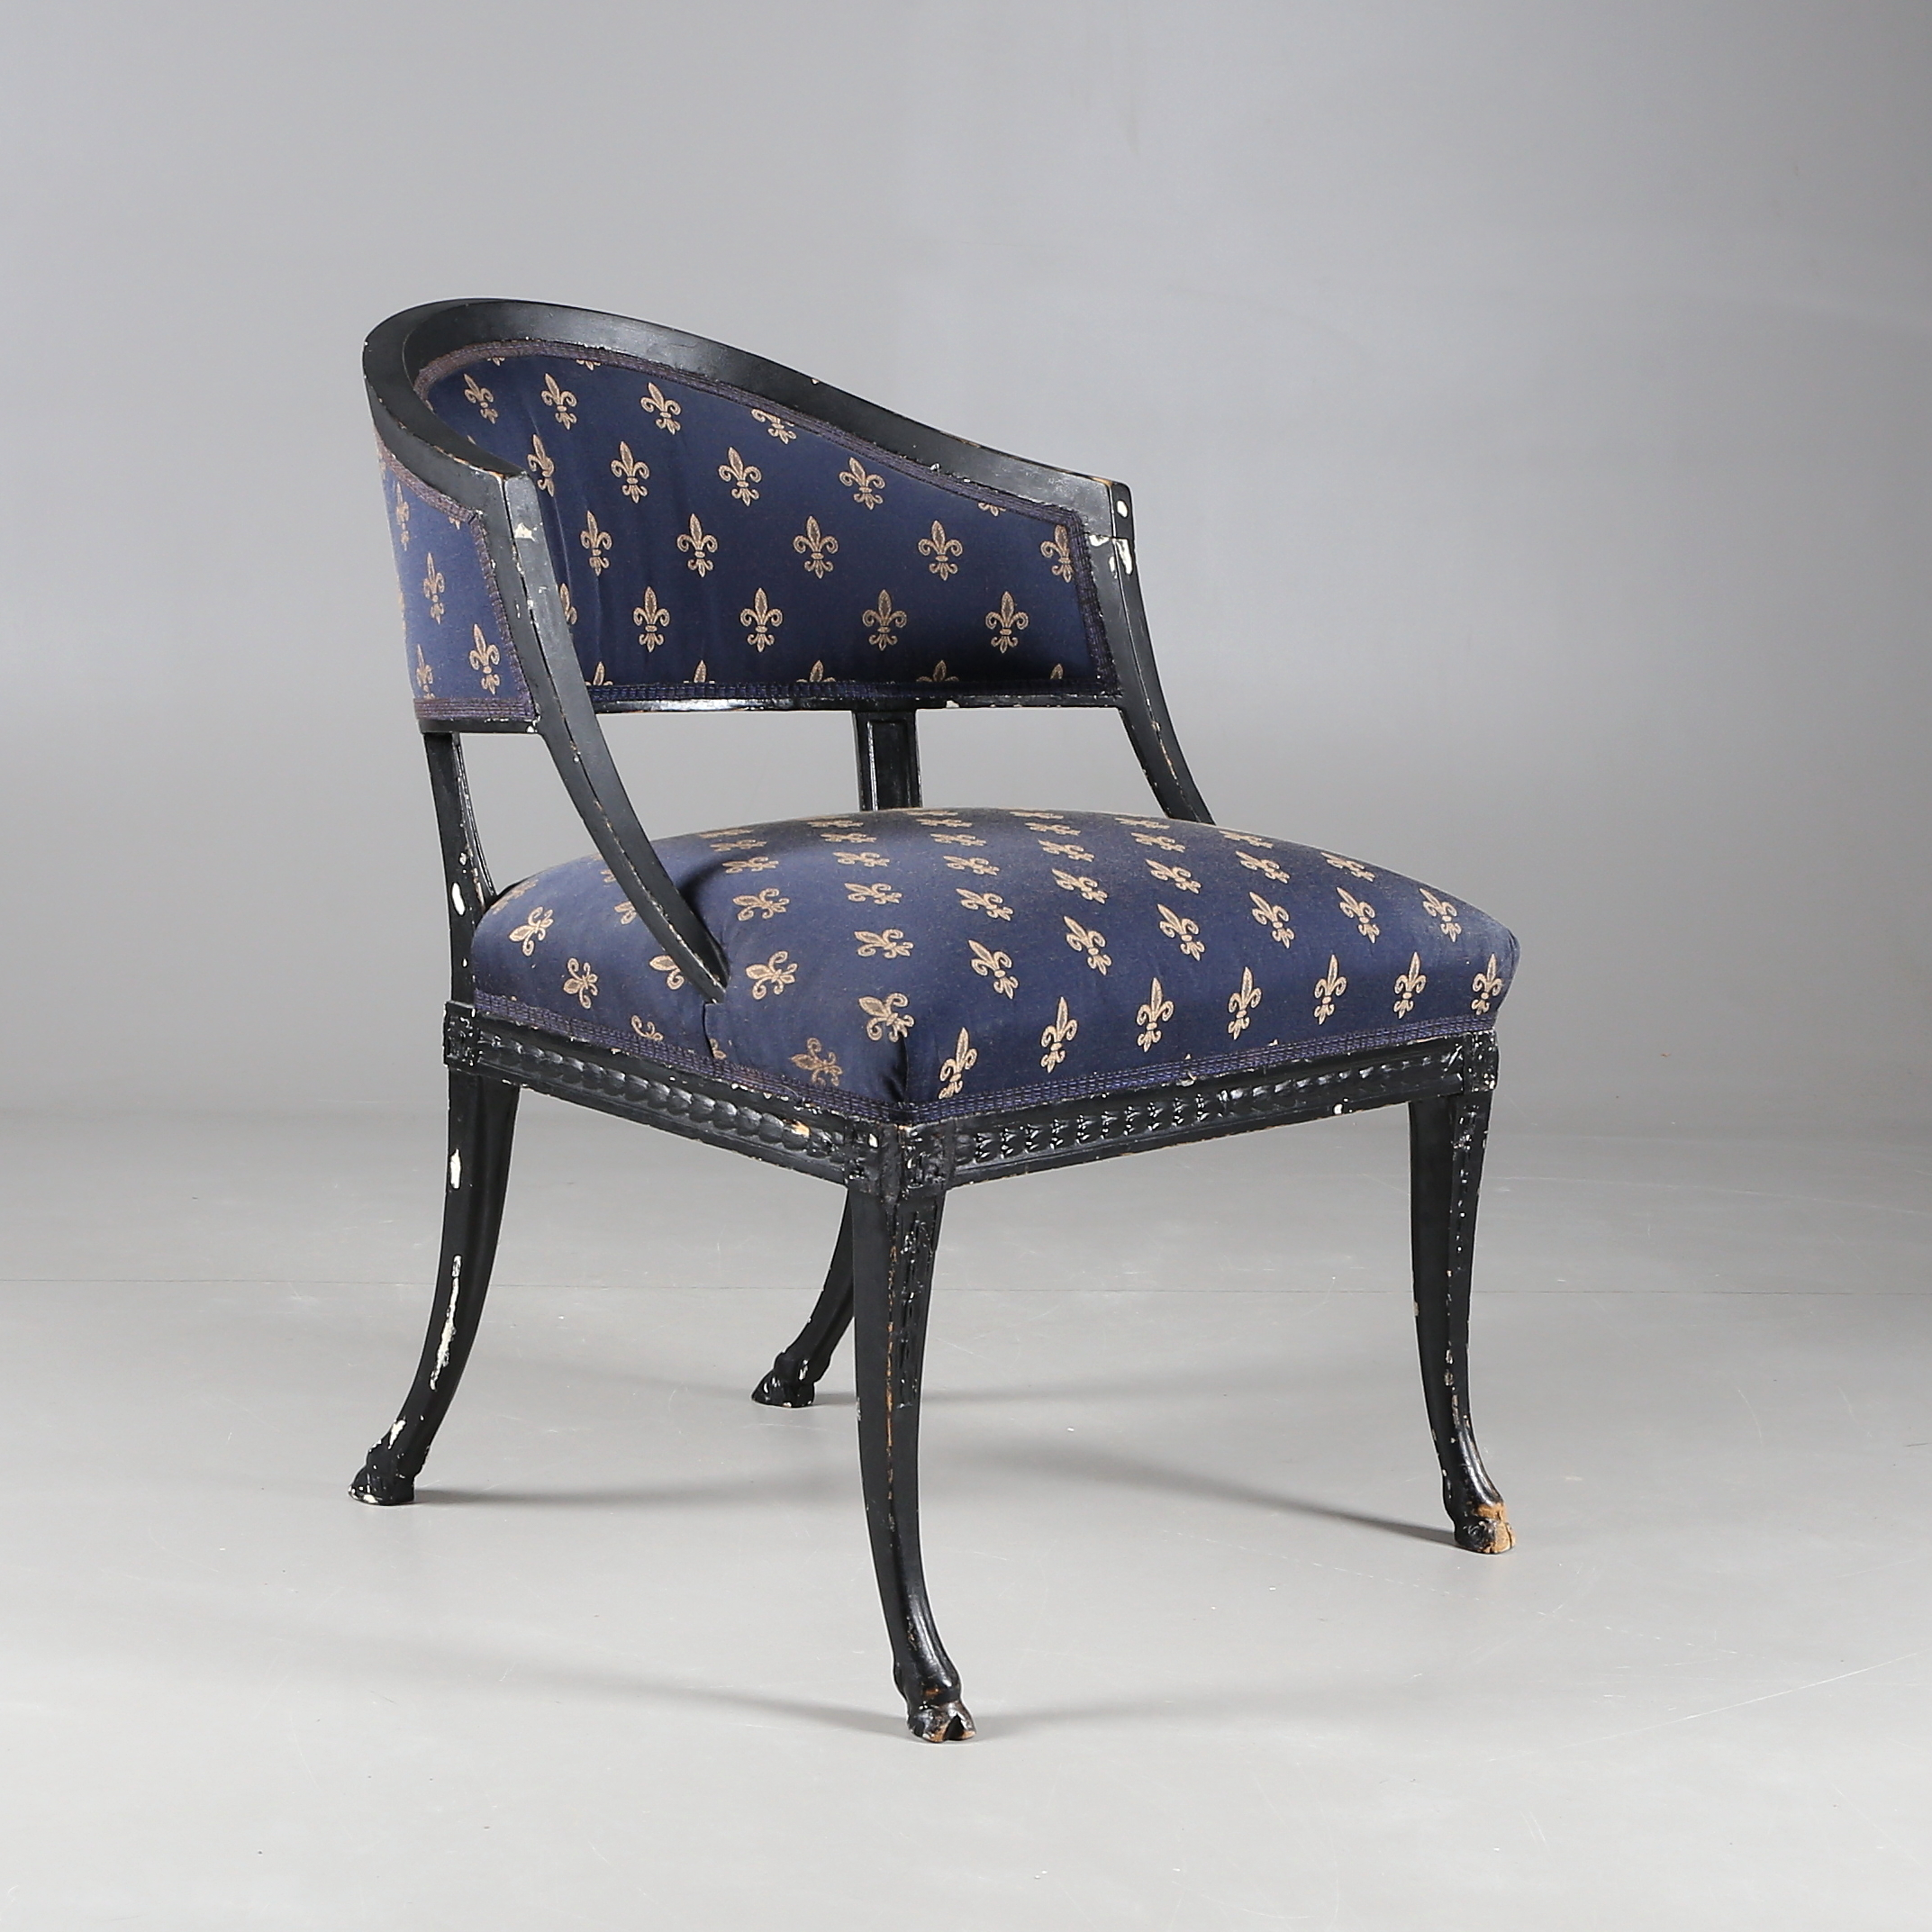 Fauteuils Stockholm Ephraim StÅhl Master In Stockholm 1794 1820 Fauteuil Late